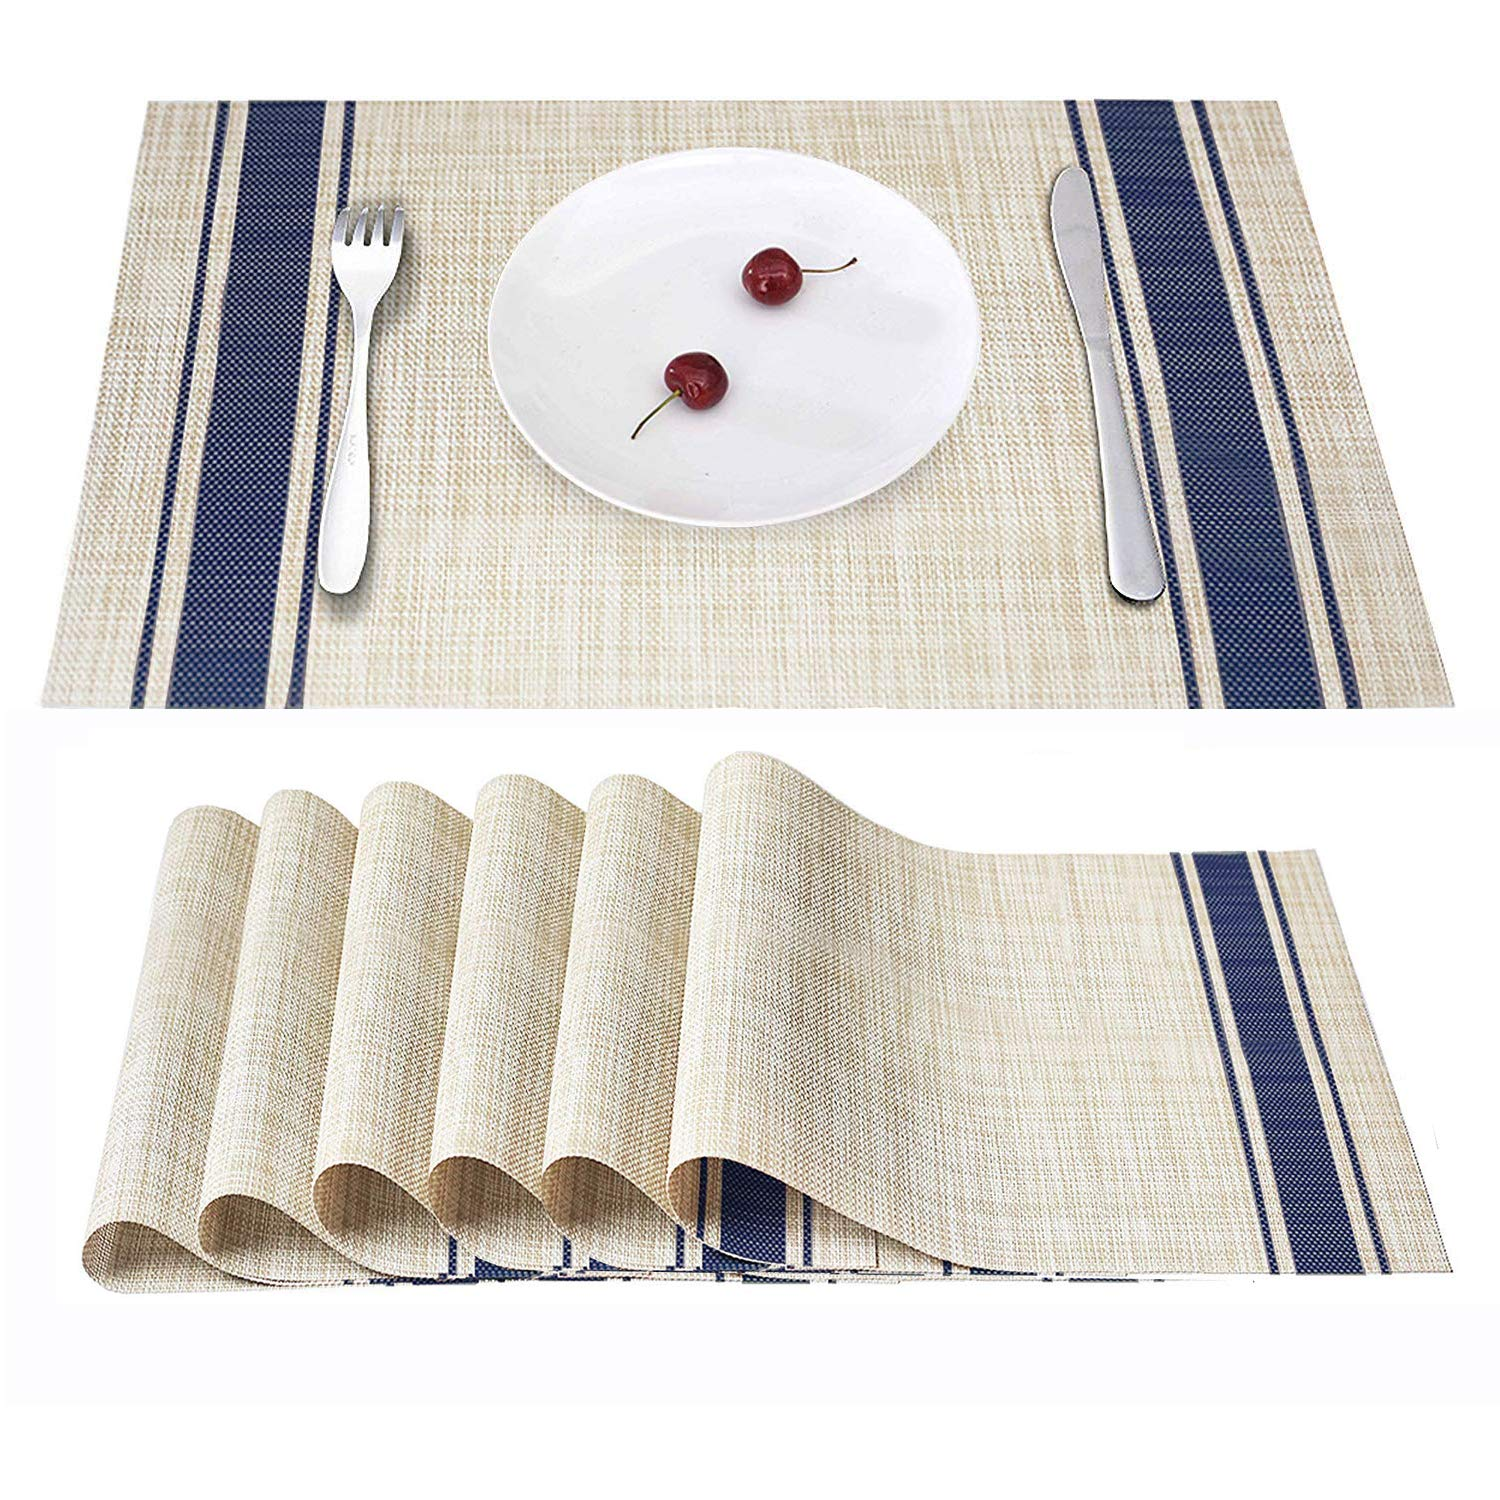 45 x 30 CM blanc r/ésistants /à la Chaleur Napperons en PVC pour la Maison et la Cuisine Smeala Set de Table Lot de 6 Sets de Table Lavables et antid/érapants en Vinyle